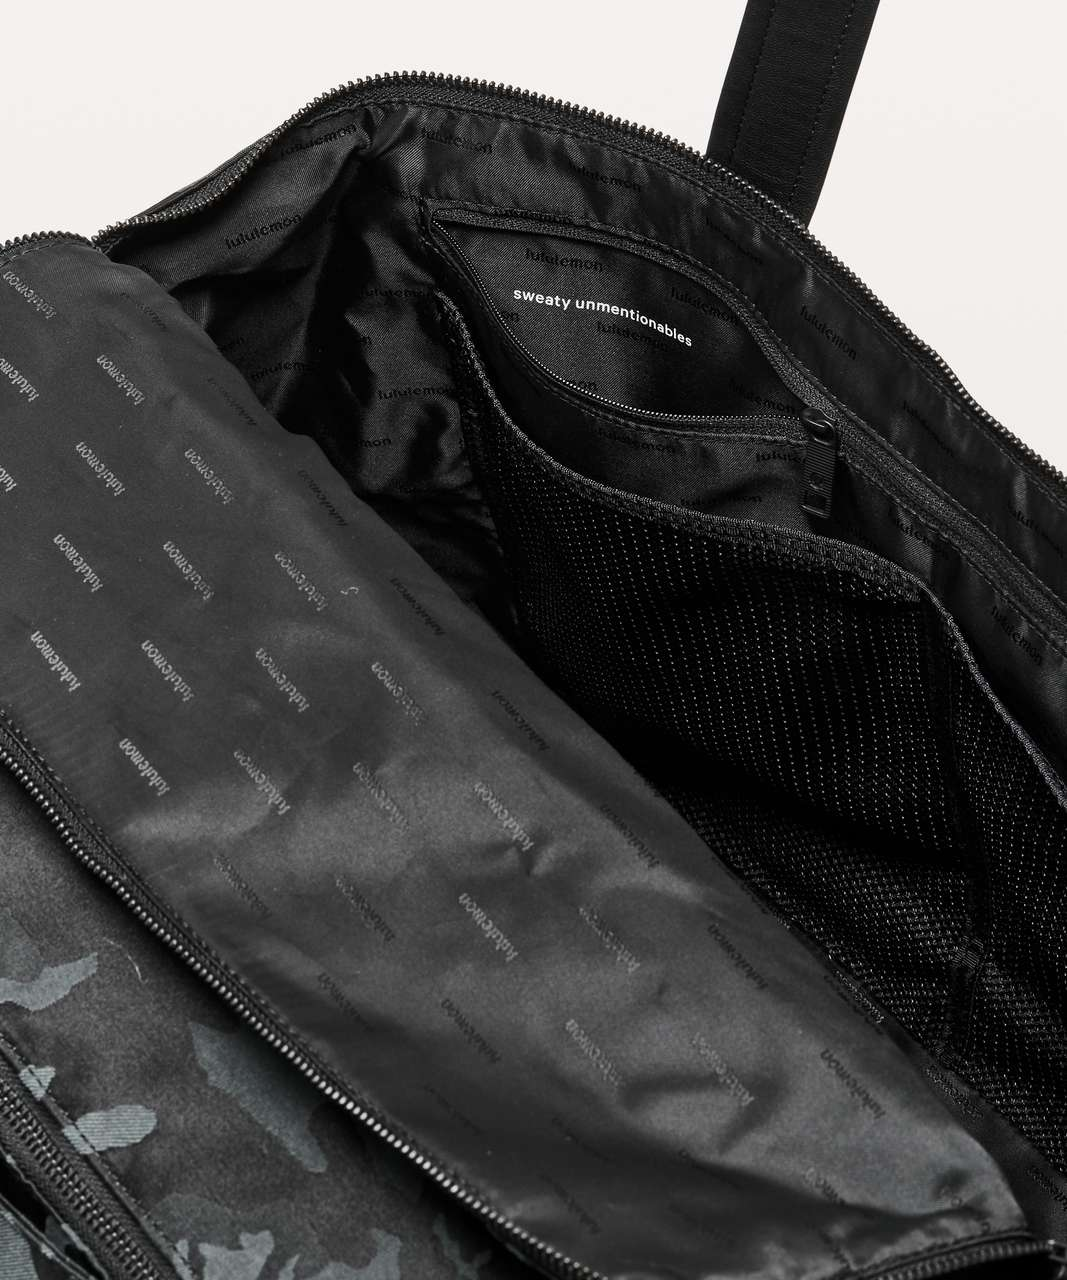 Lululemon Out Of Range Bag *28L - Jacquard Camo Cotton Obsidian / Black